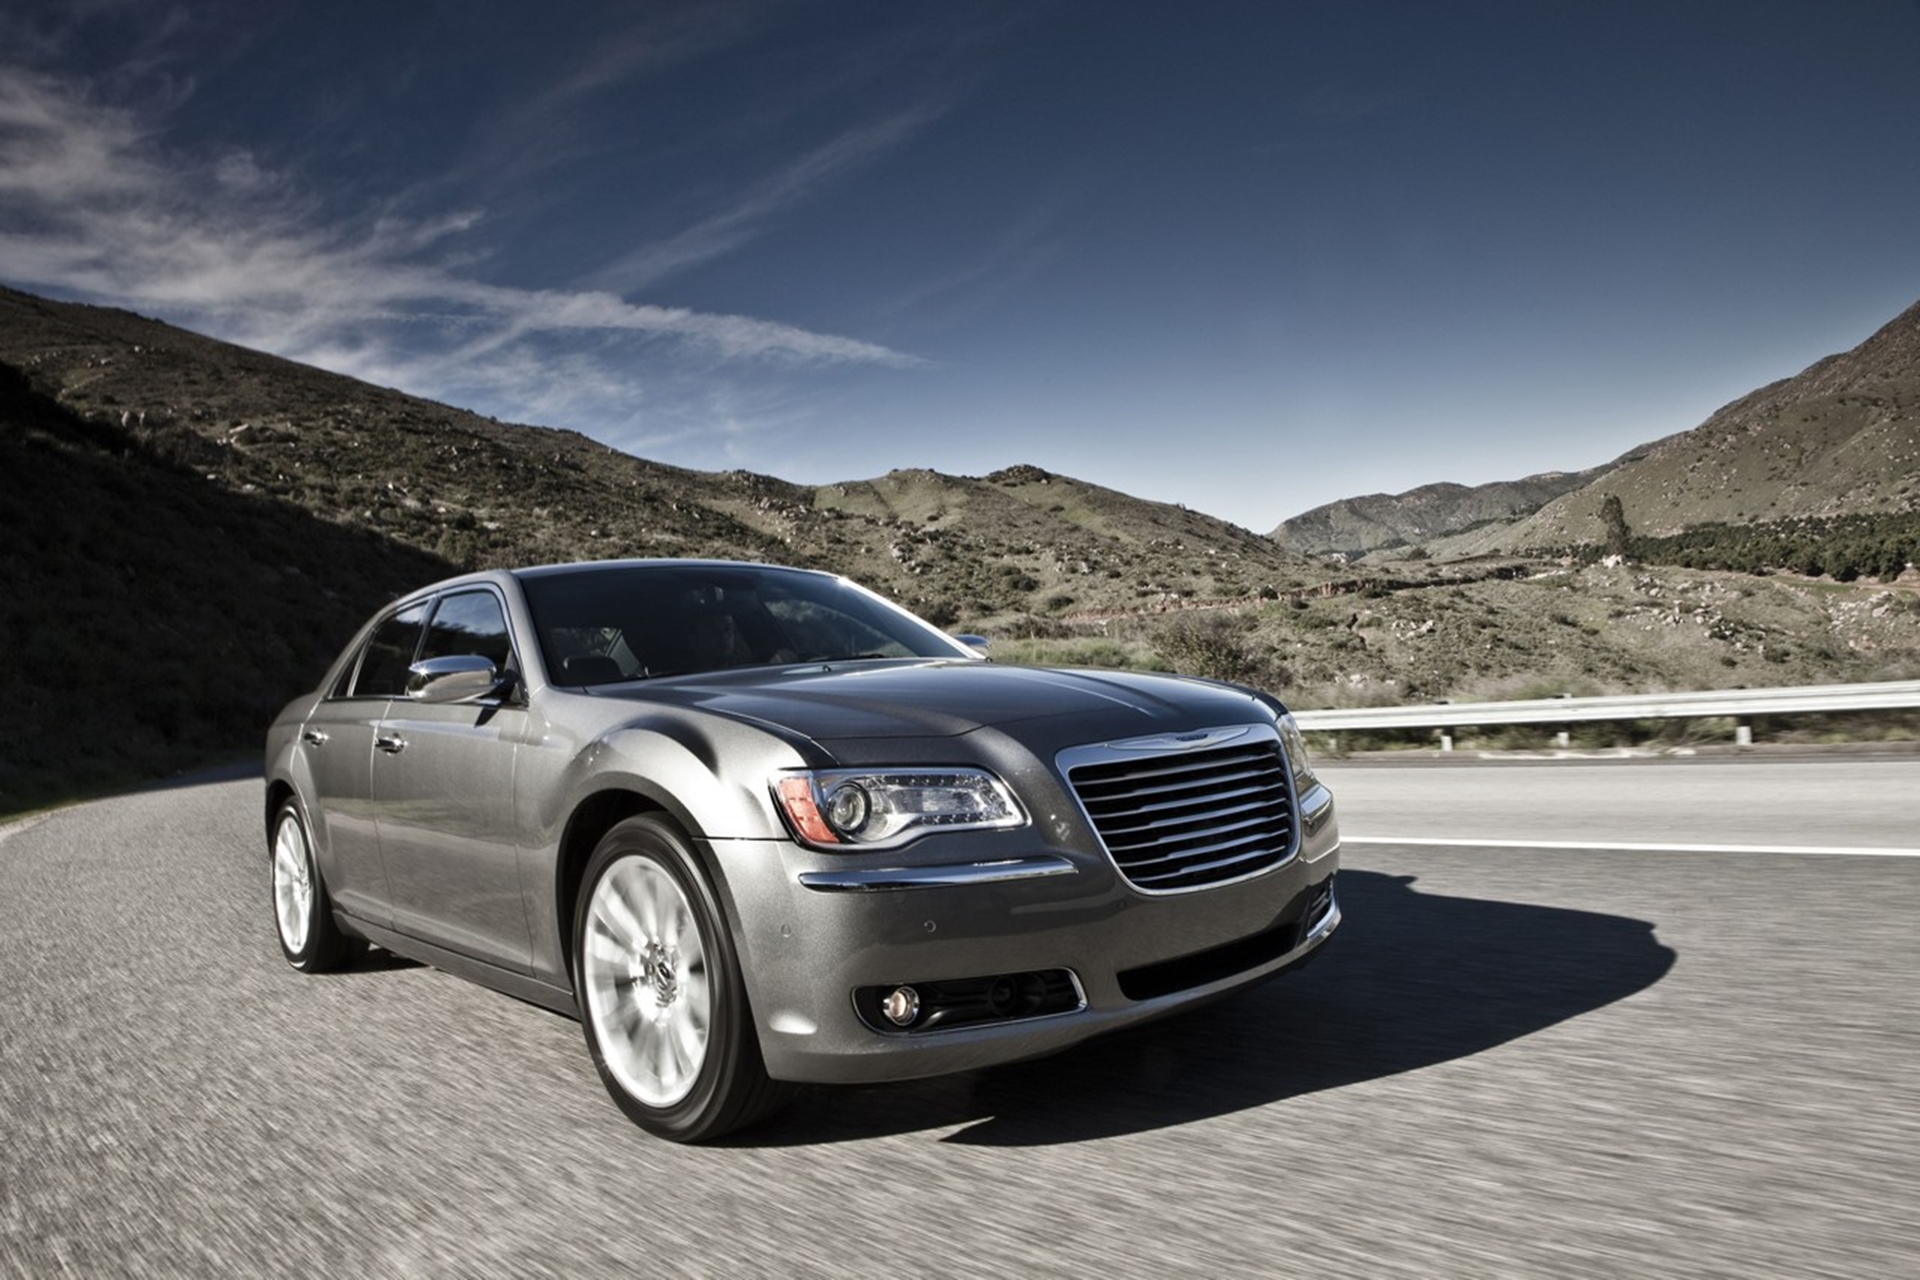 2019 Chrysler 300 Luxury Series photo - 2